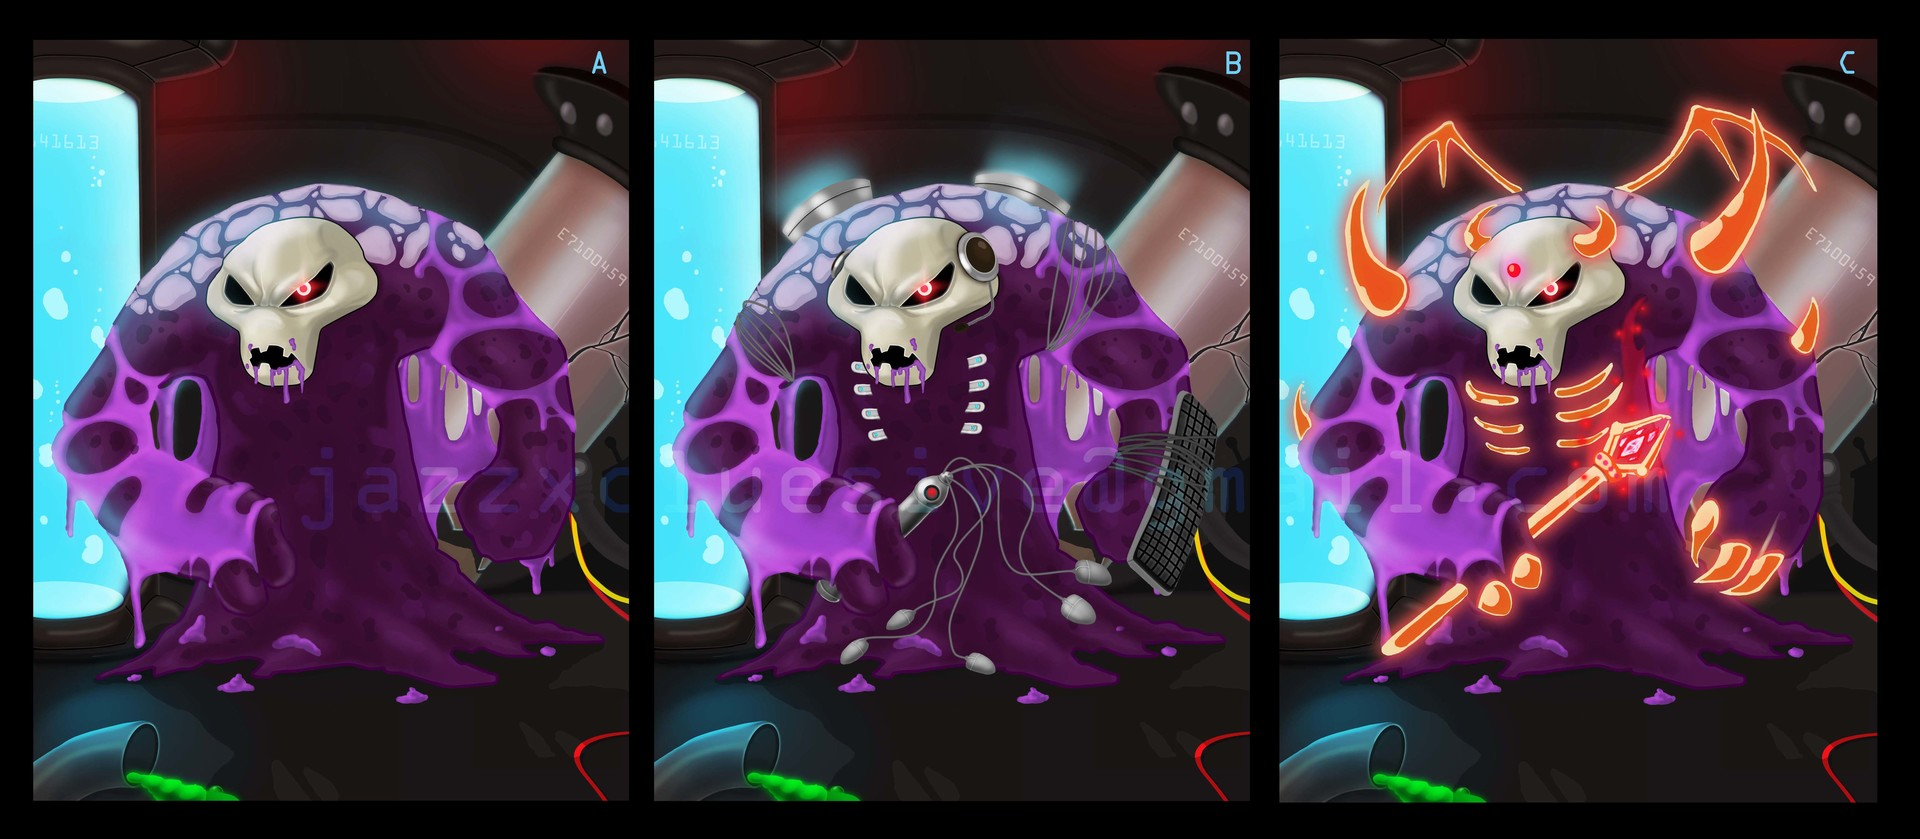 Jazz siy gameshed creature test